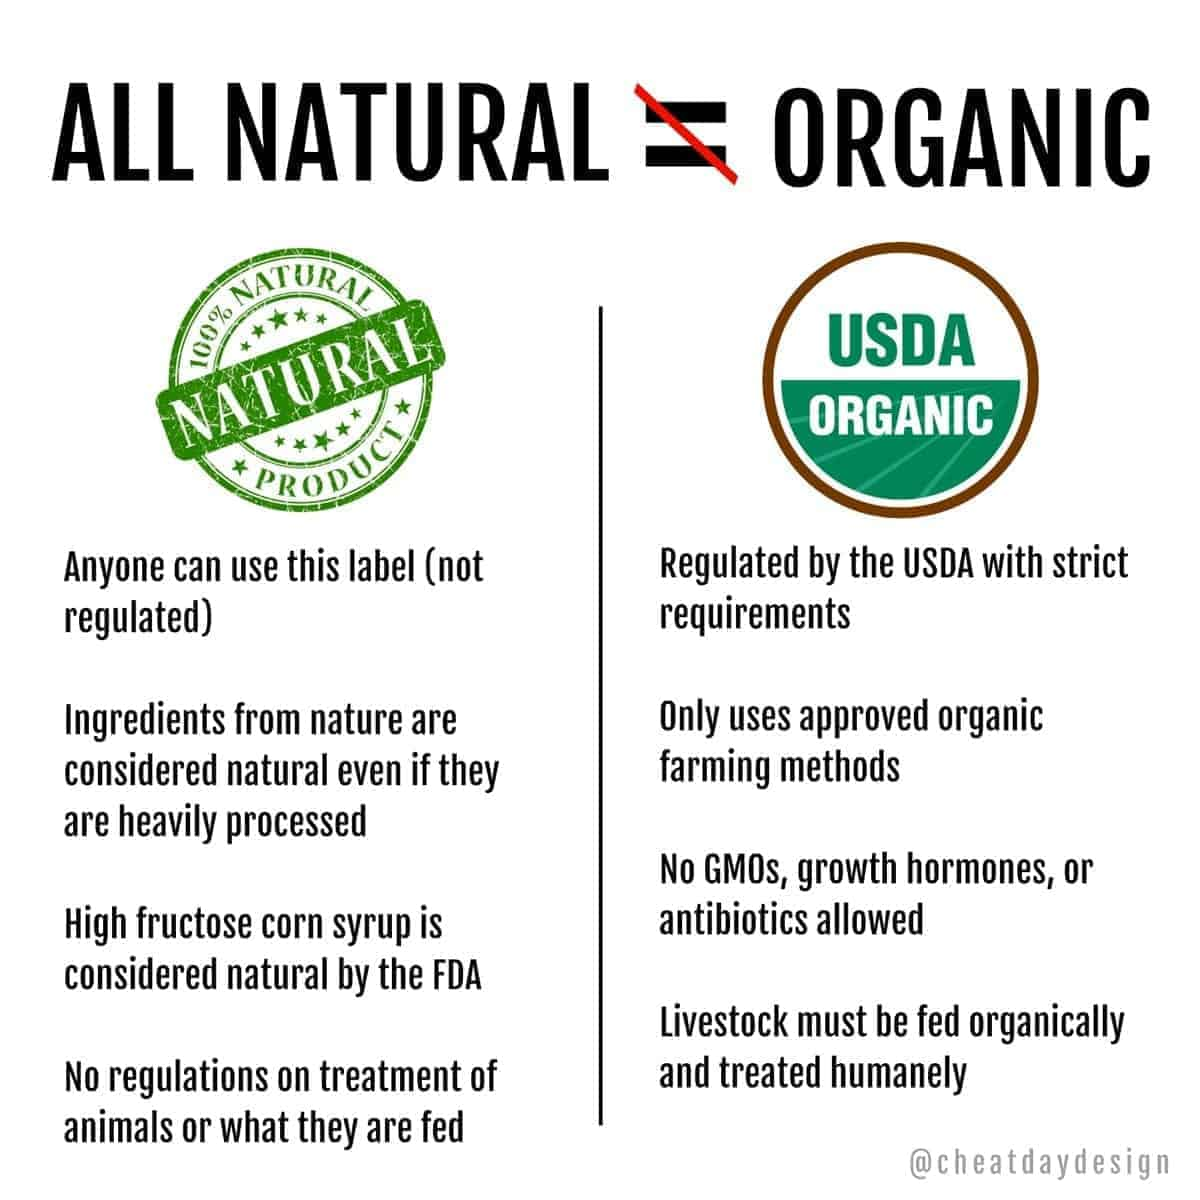 All-Natural vs Organic